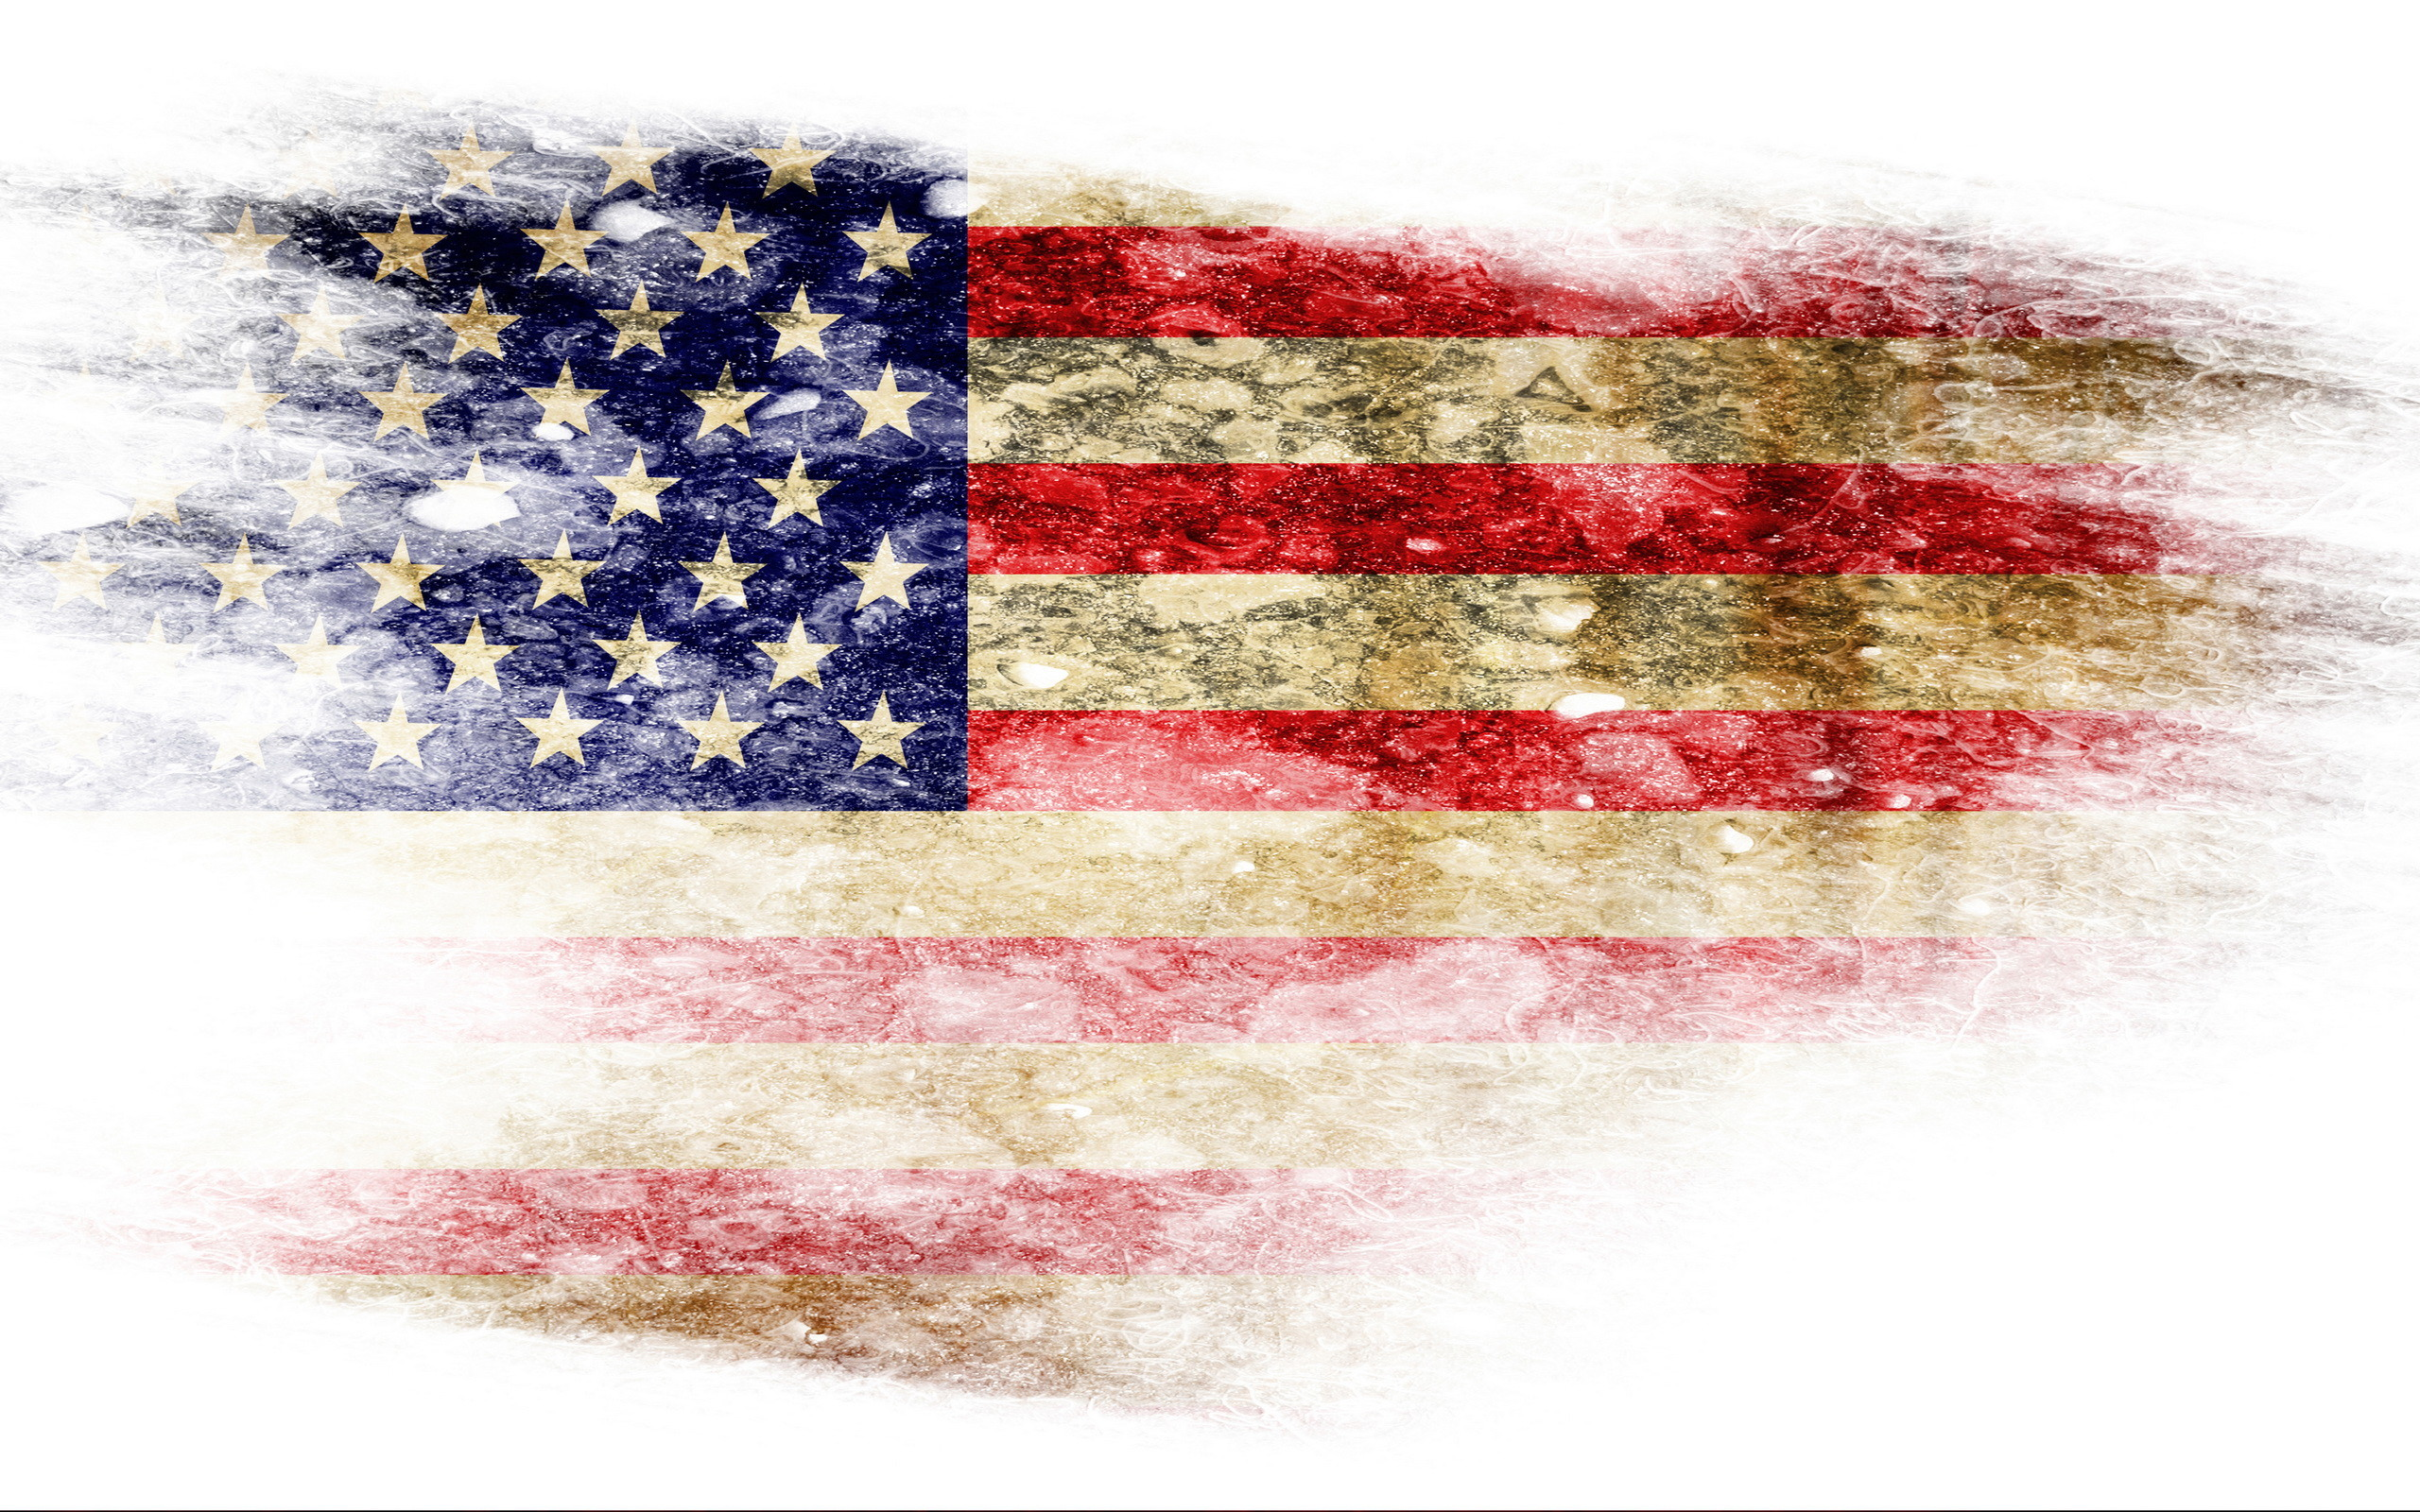 4th of July Party Supplies - 4th of July Decorations American flag photo effects